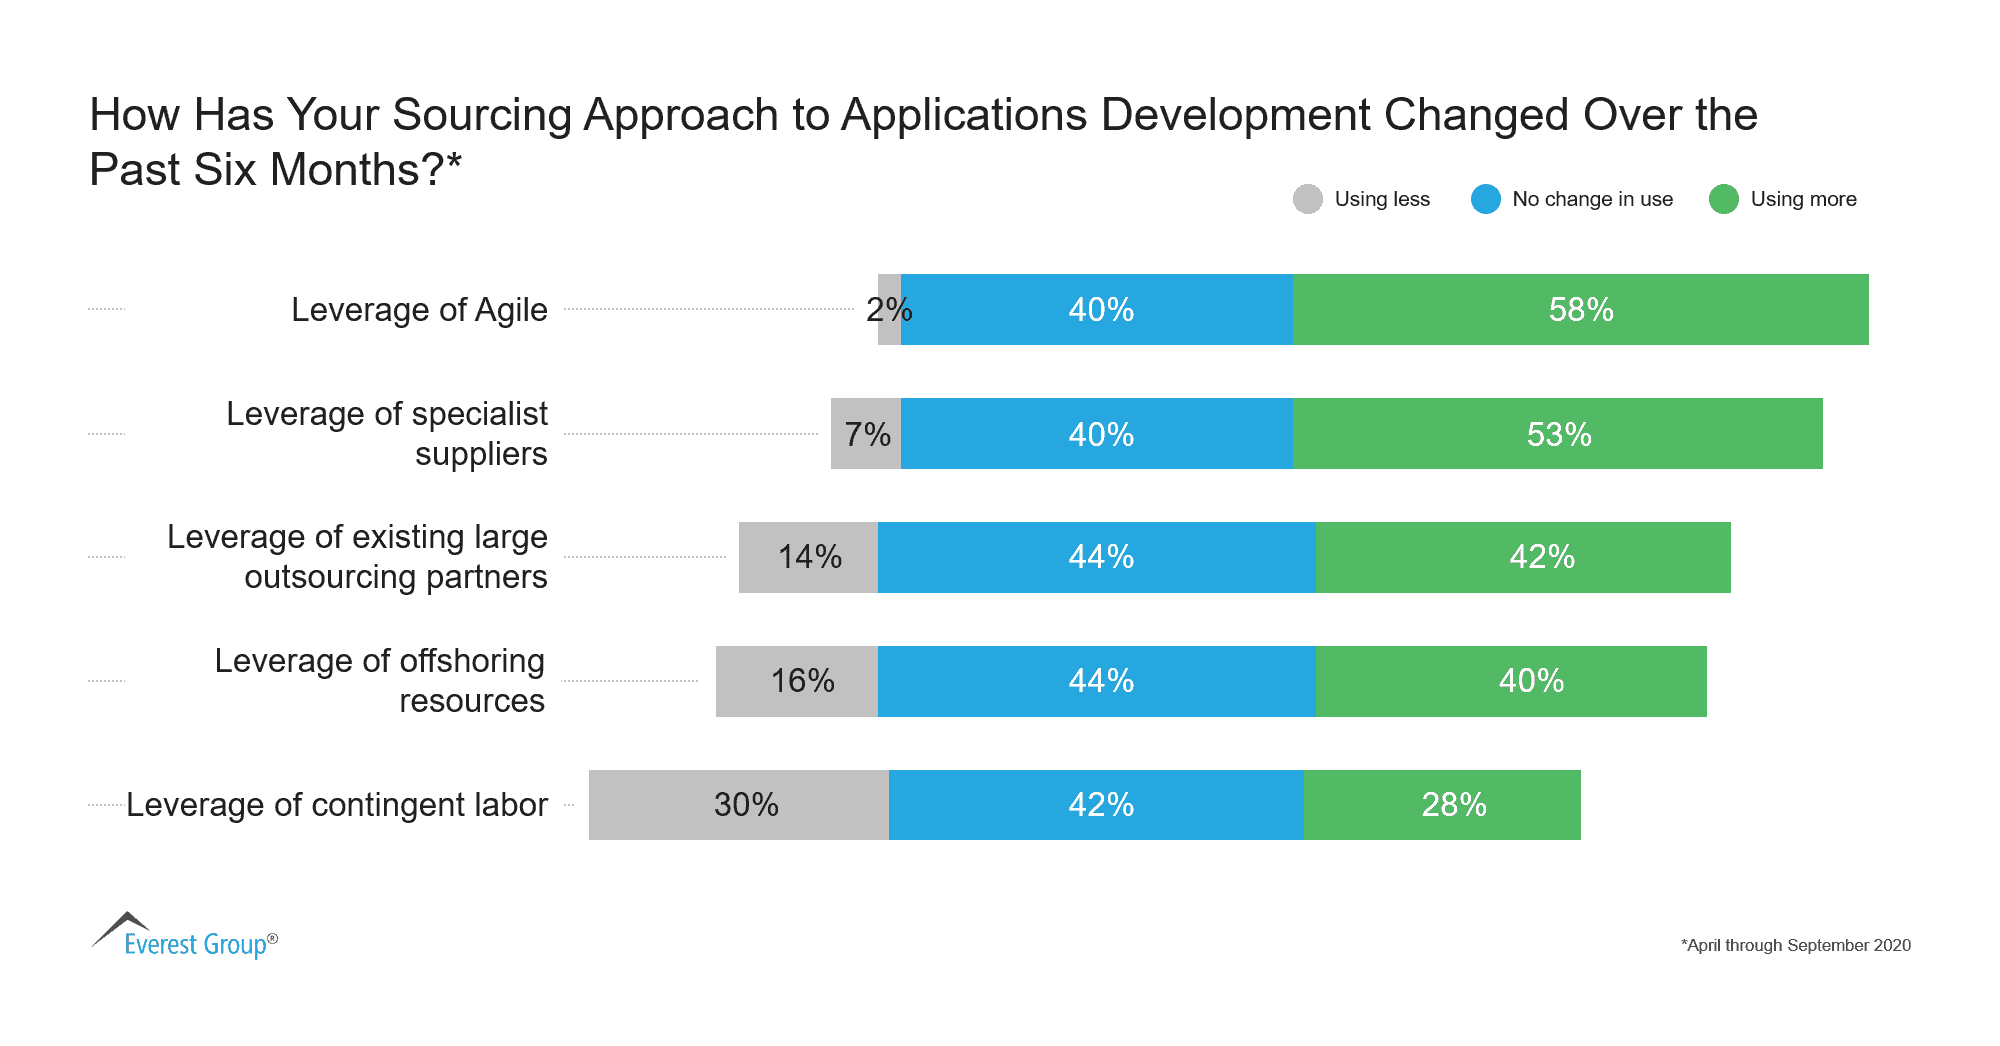 How Has Your Sourcing Approach to Applications Development Changed Over the Past Six Months